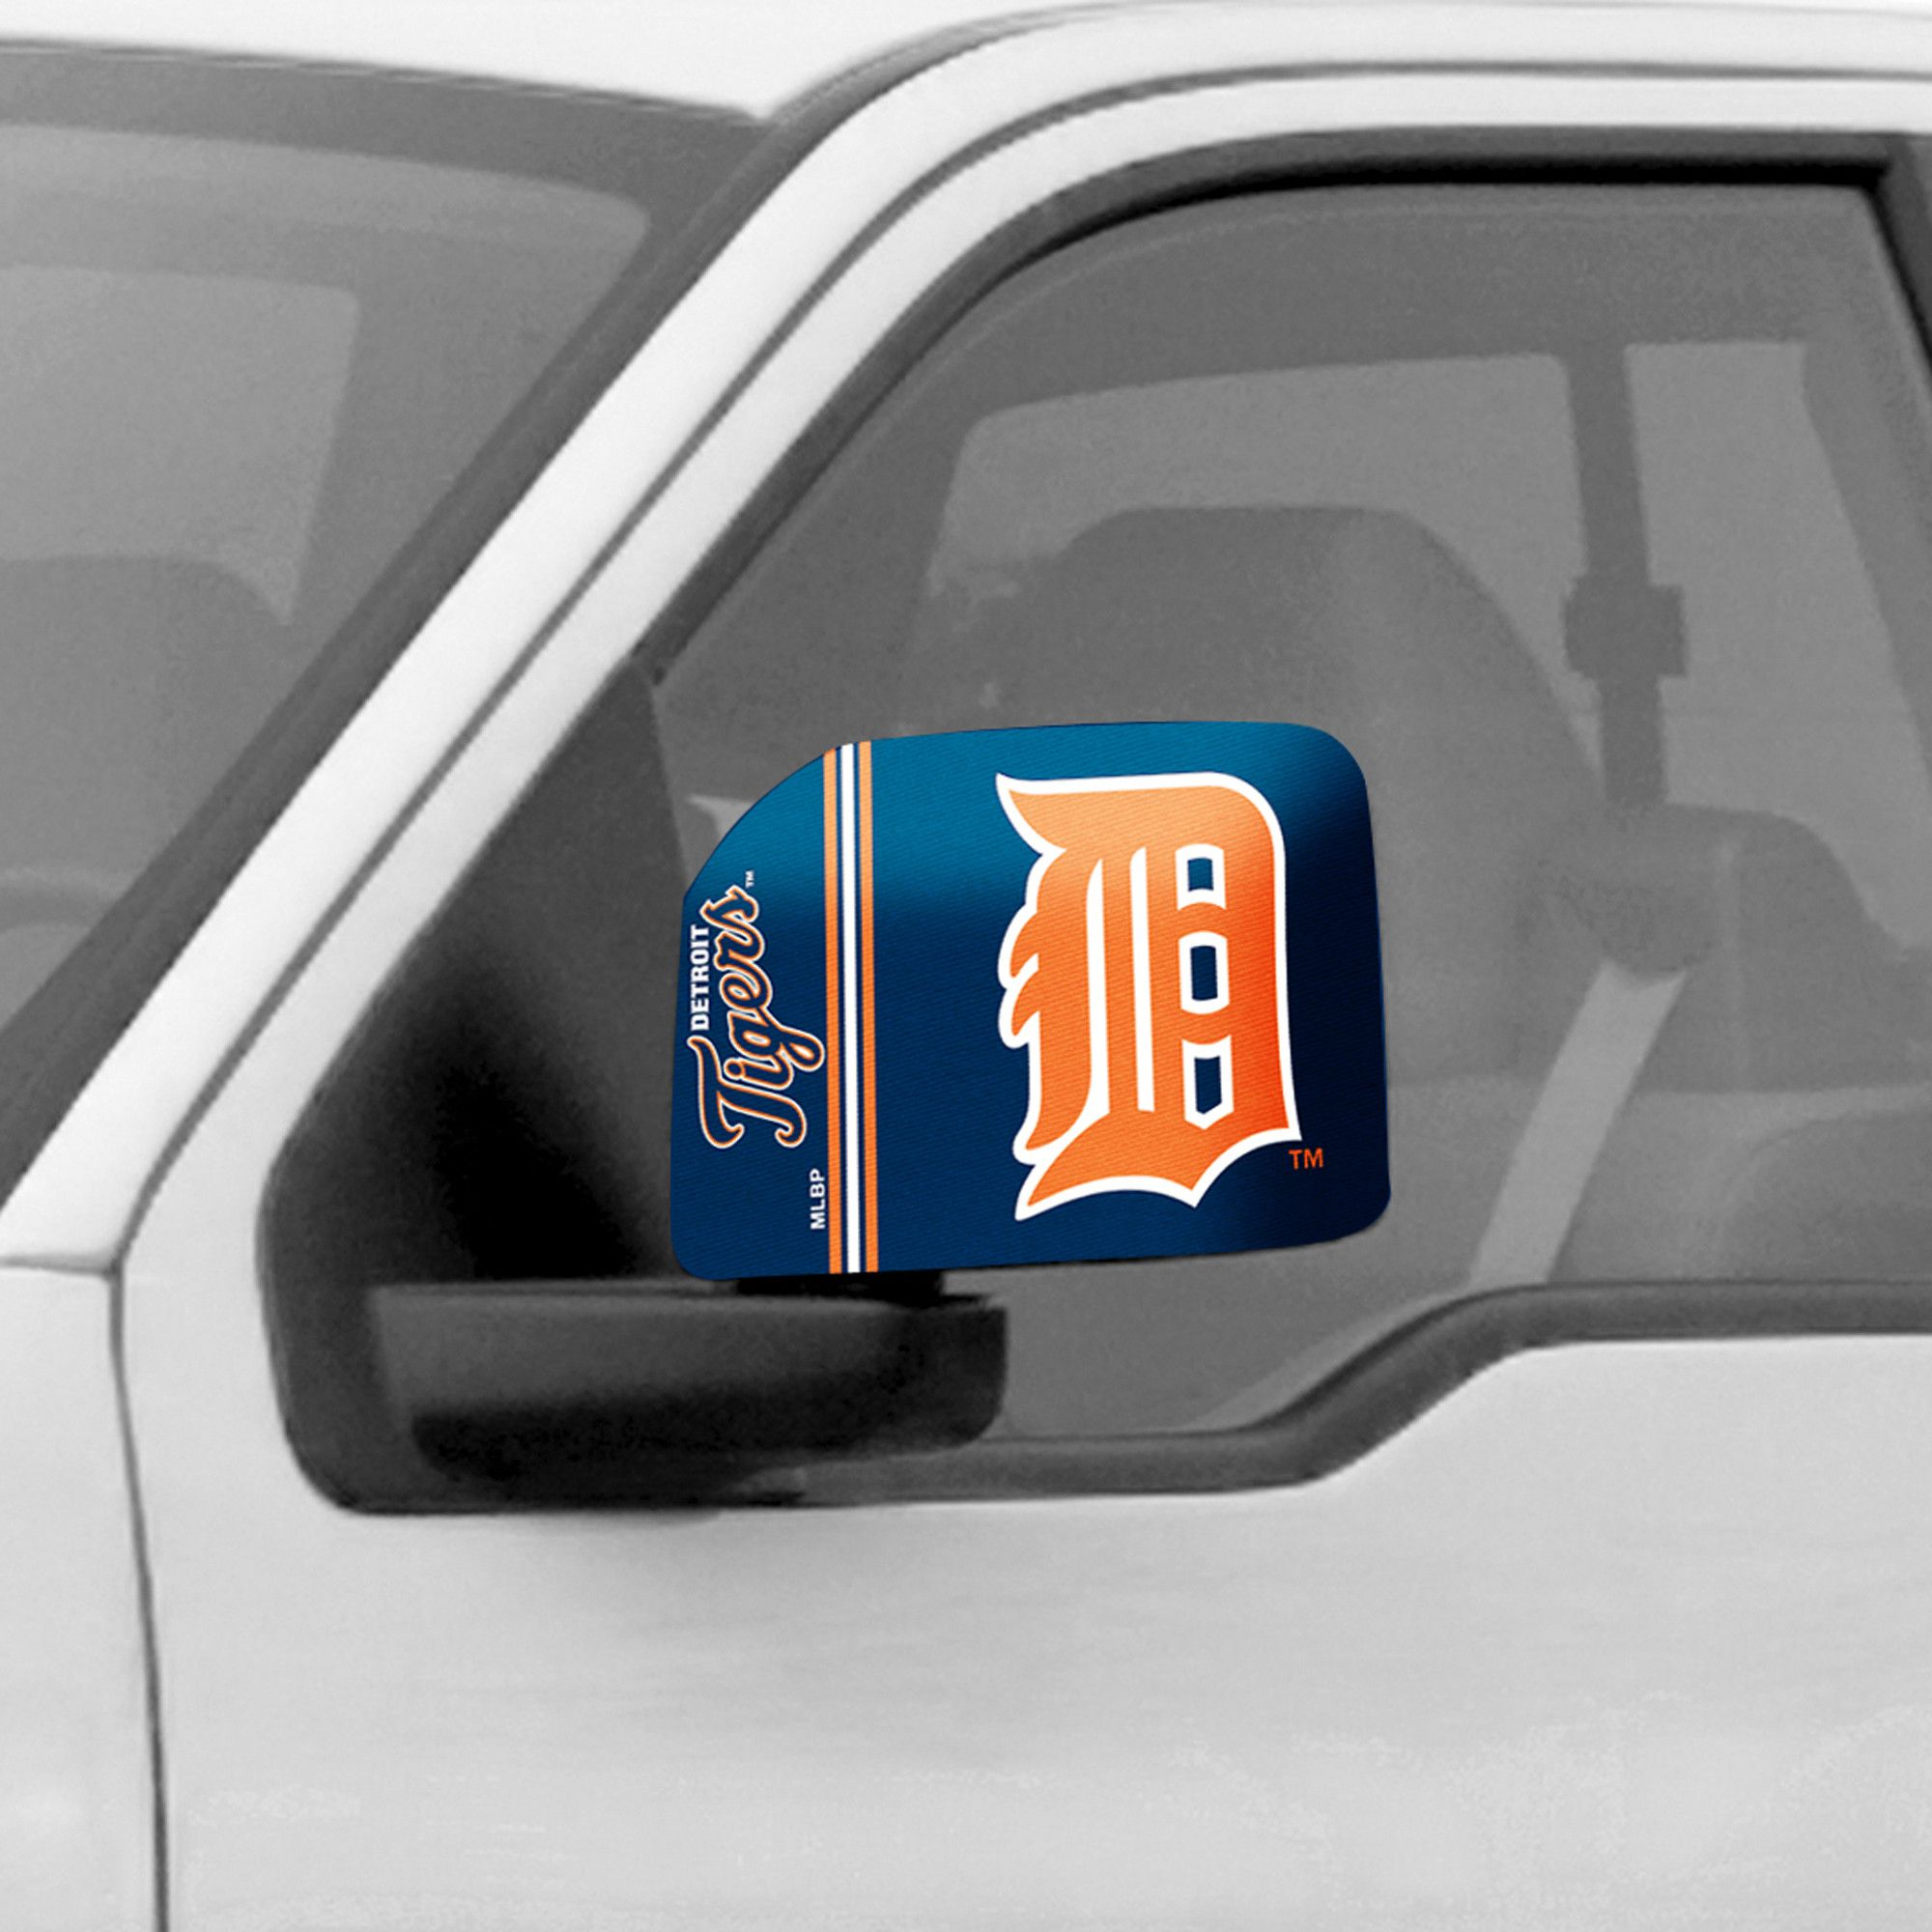 Car mirror hanging toys  Detroit Tigers Large Mirror Cover  Seasons The oujays and Accessories